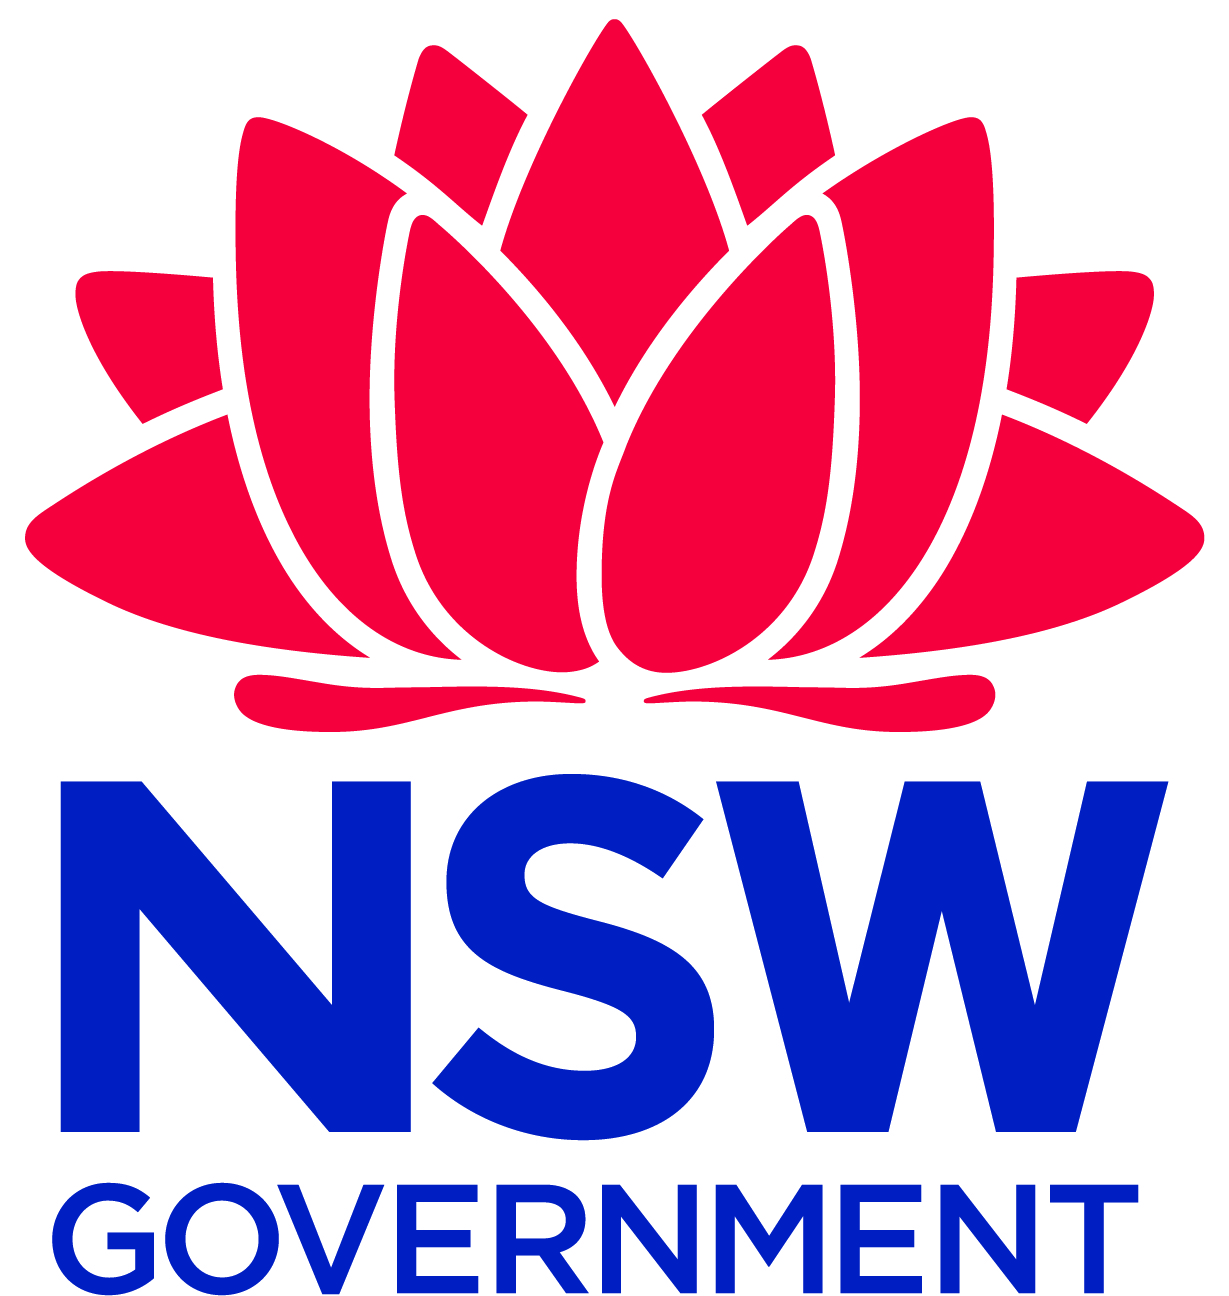 NSW Government, Department of Industry